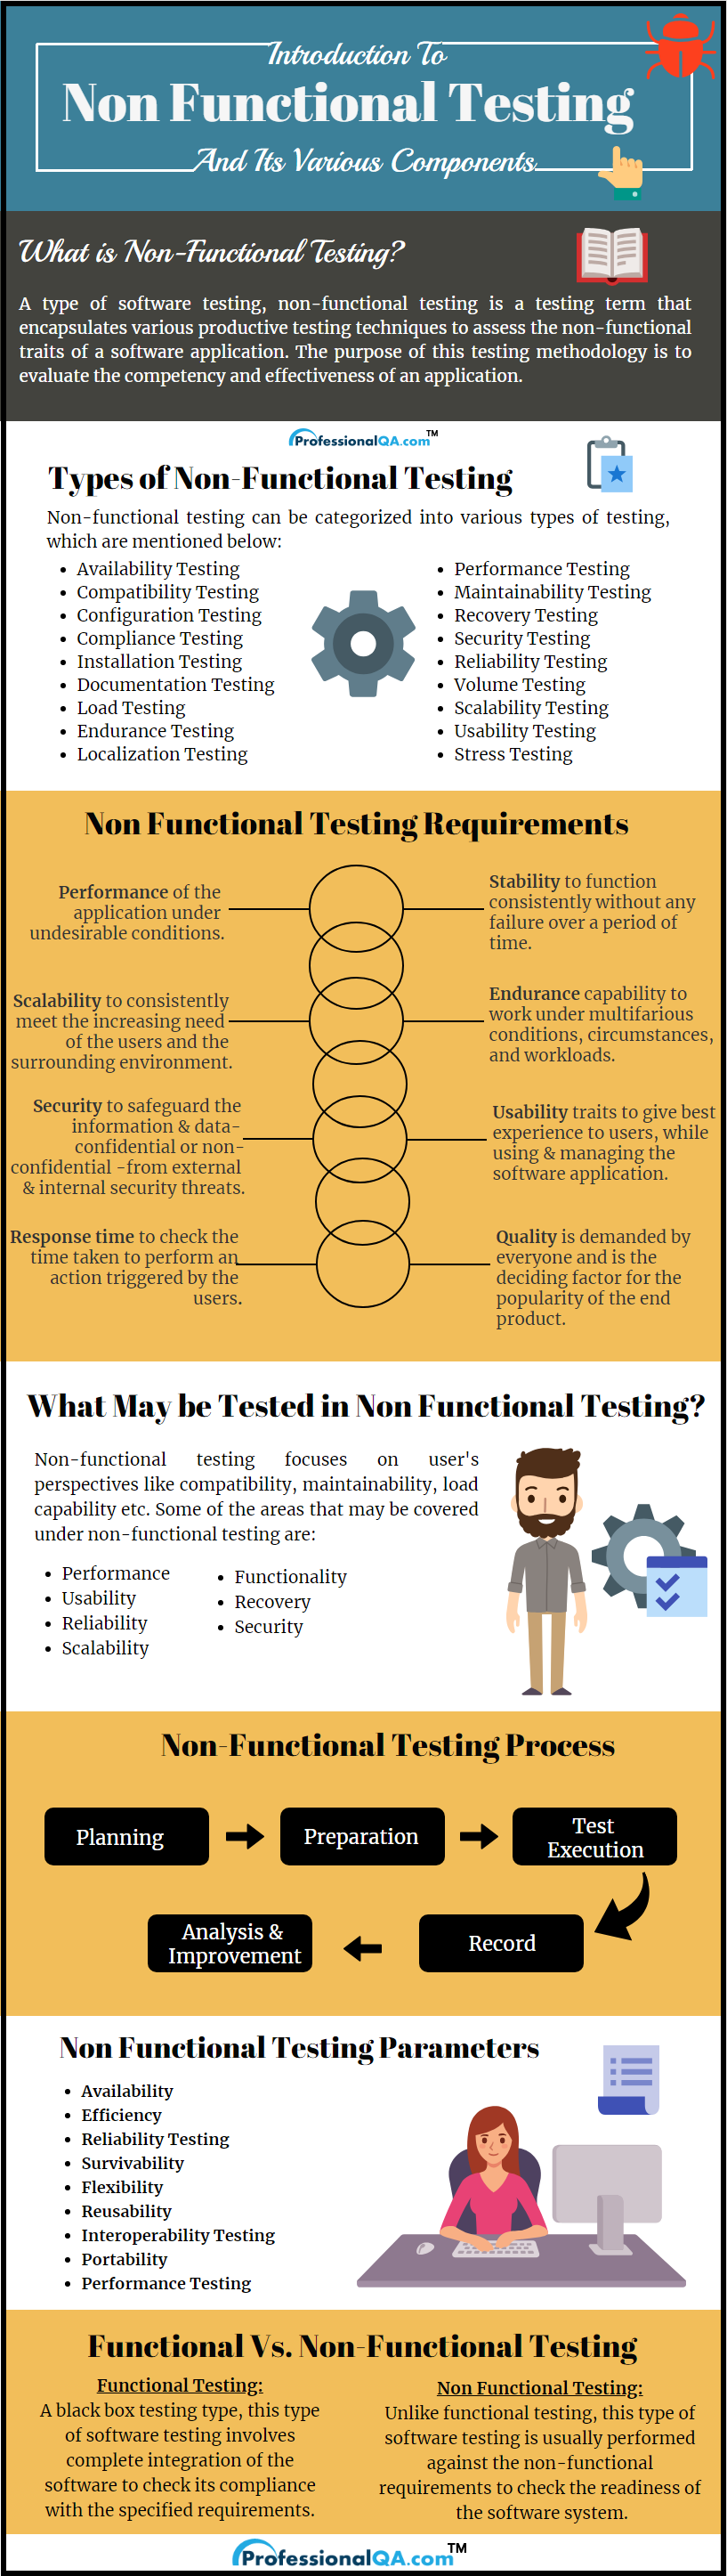 Non-Functional Testing: Types,Process,Requirements